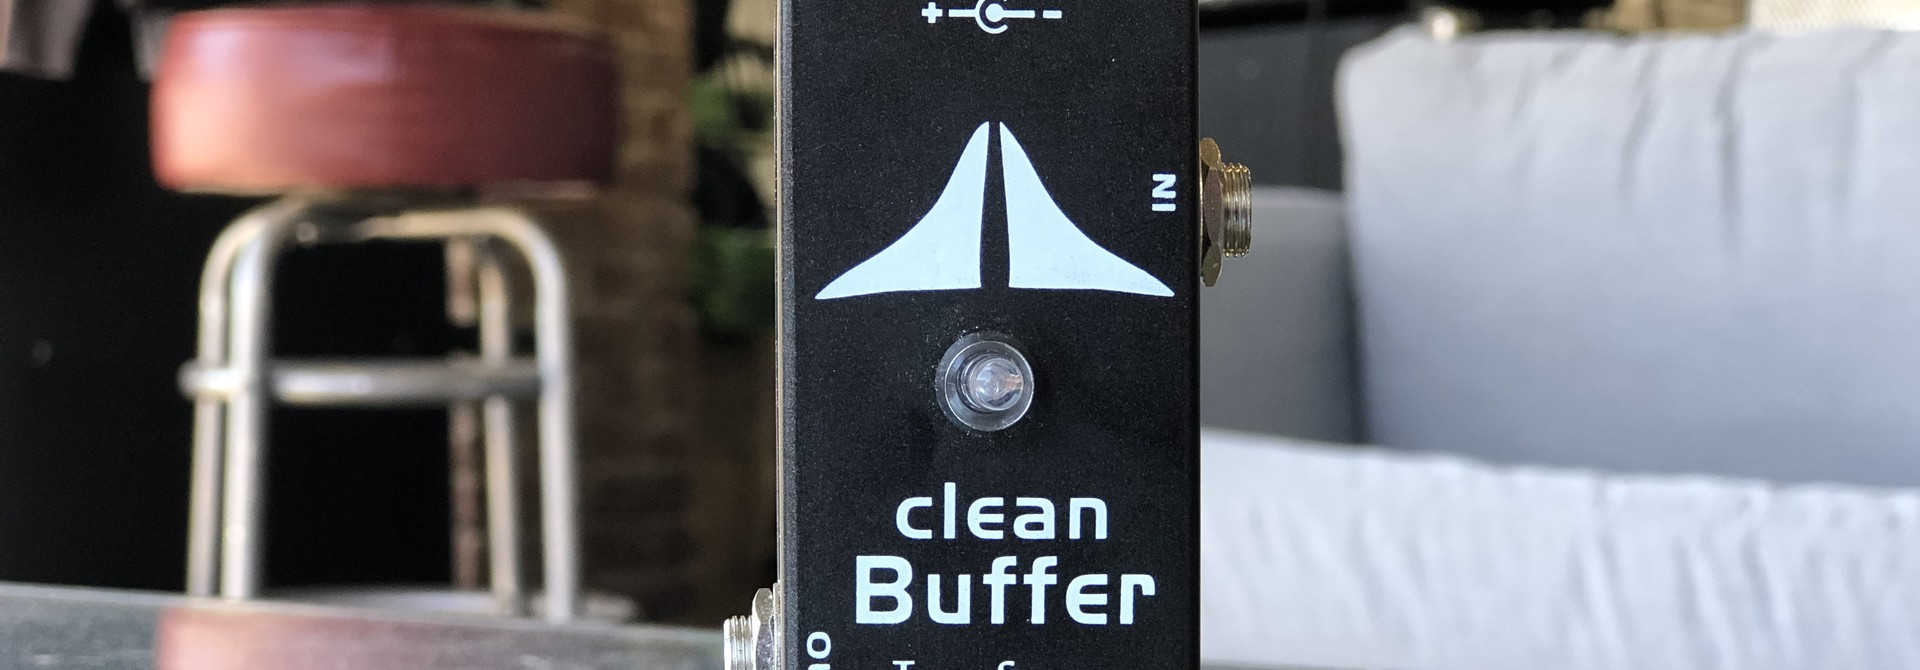 Mosky Clean Buffer